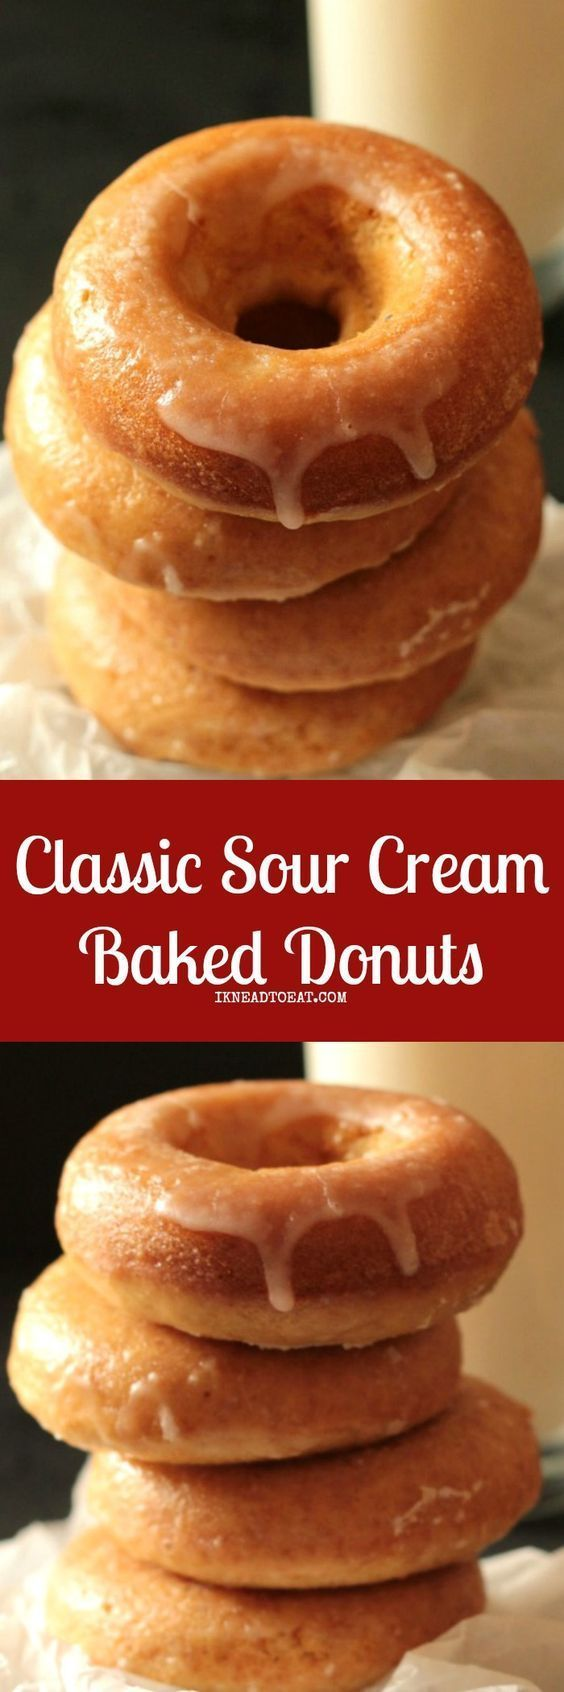 Classic Sour Cream Baked Donuts - yummy! Can be made with truvia and oat flour